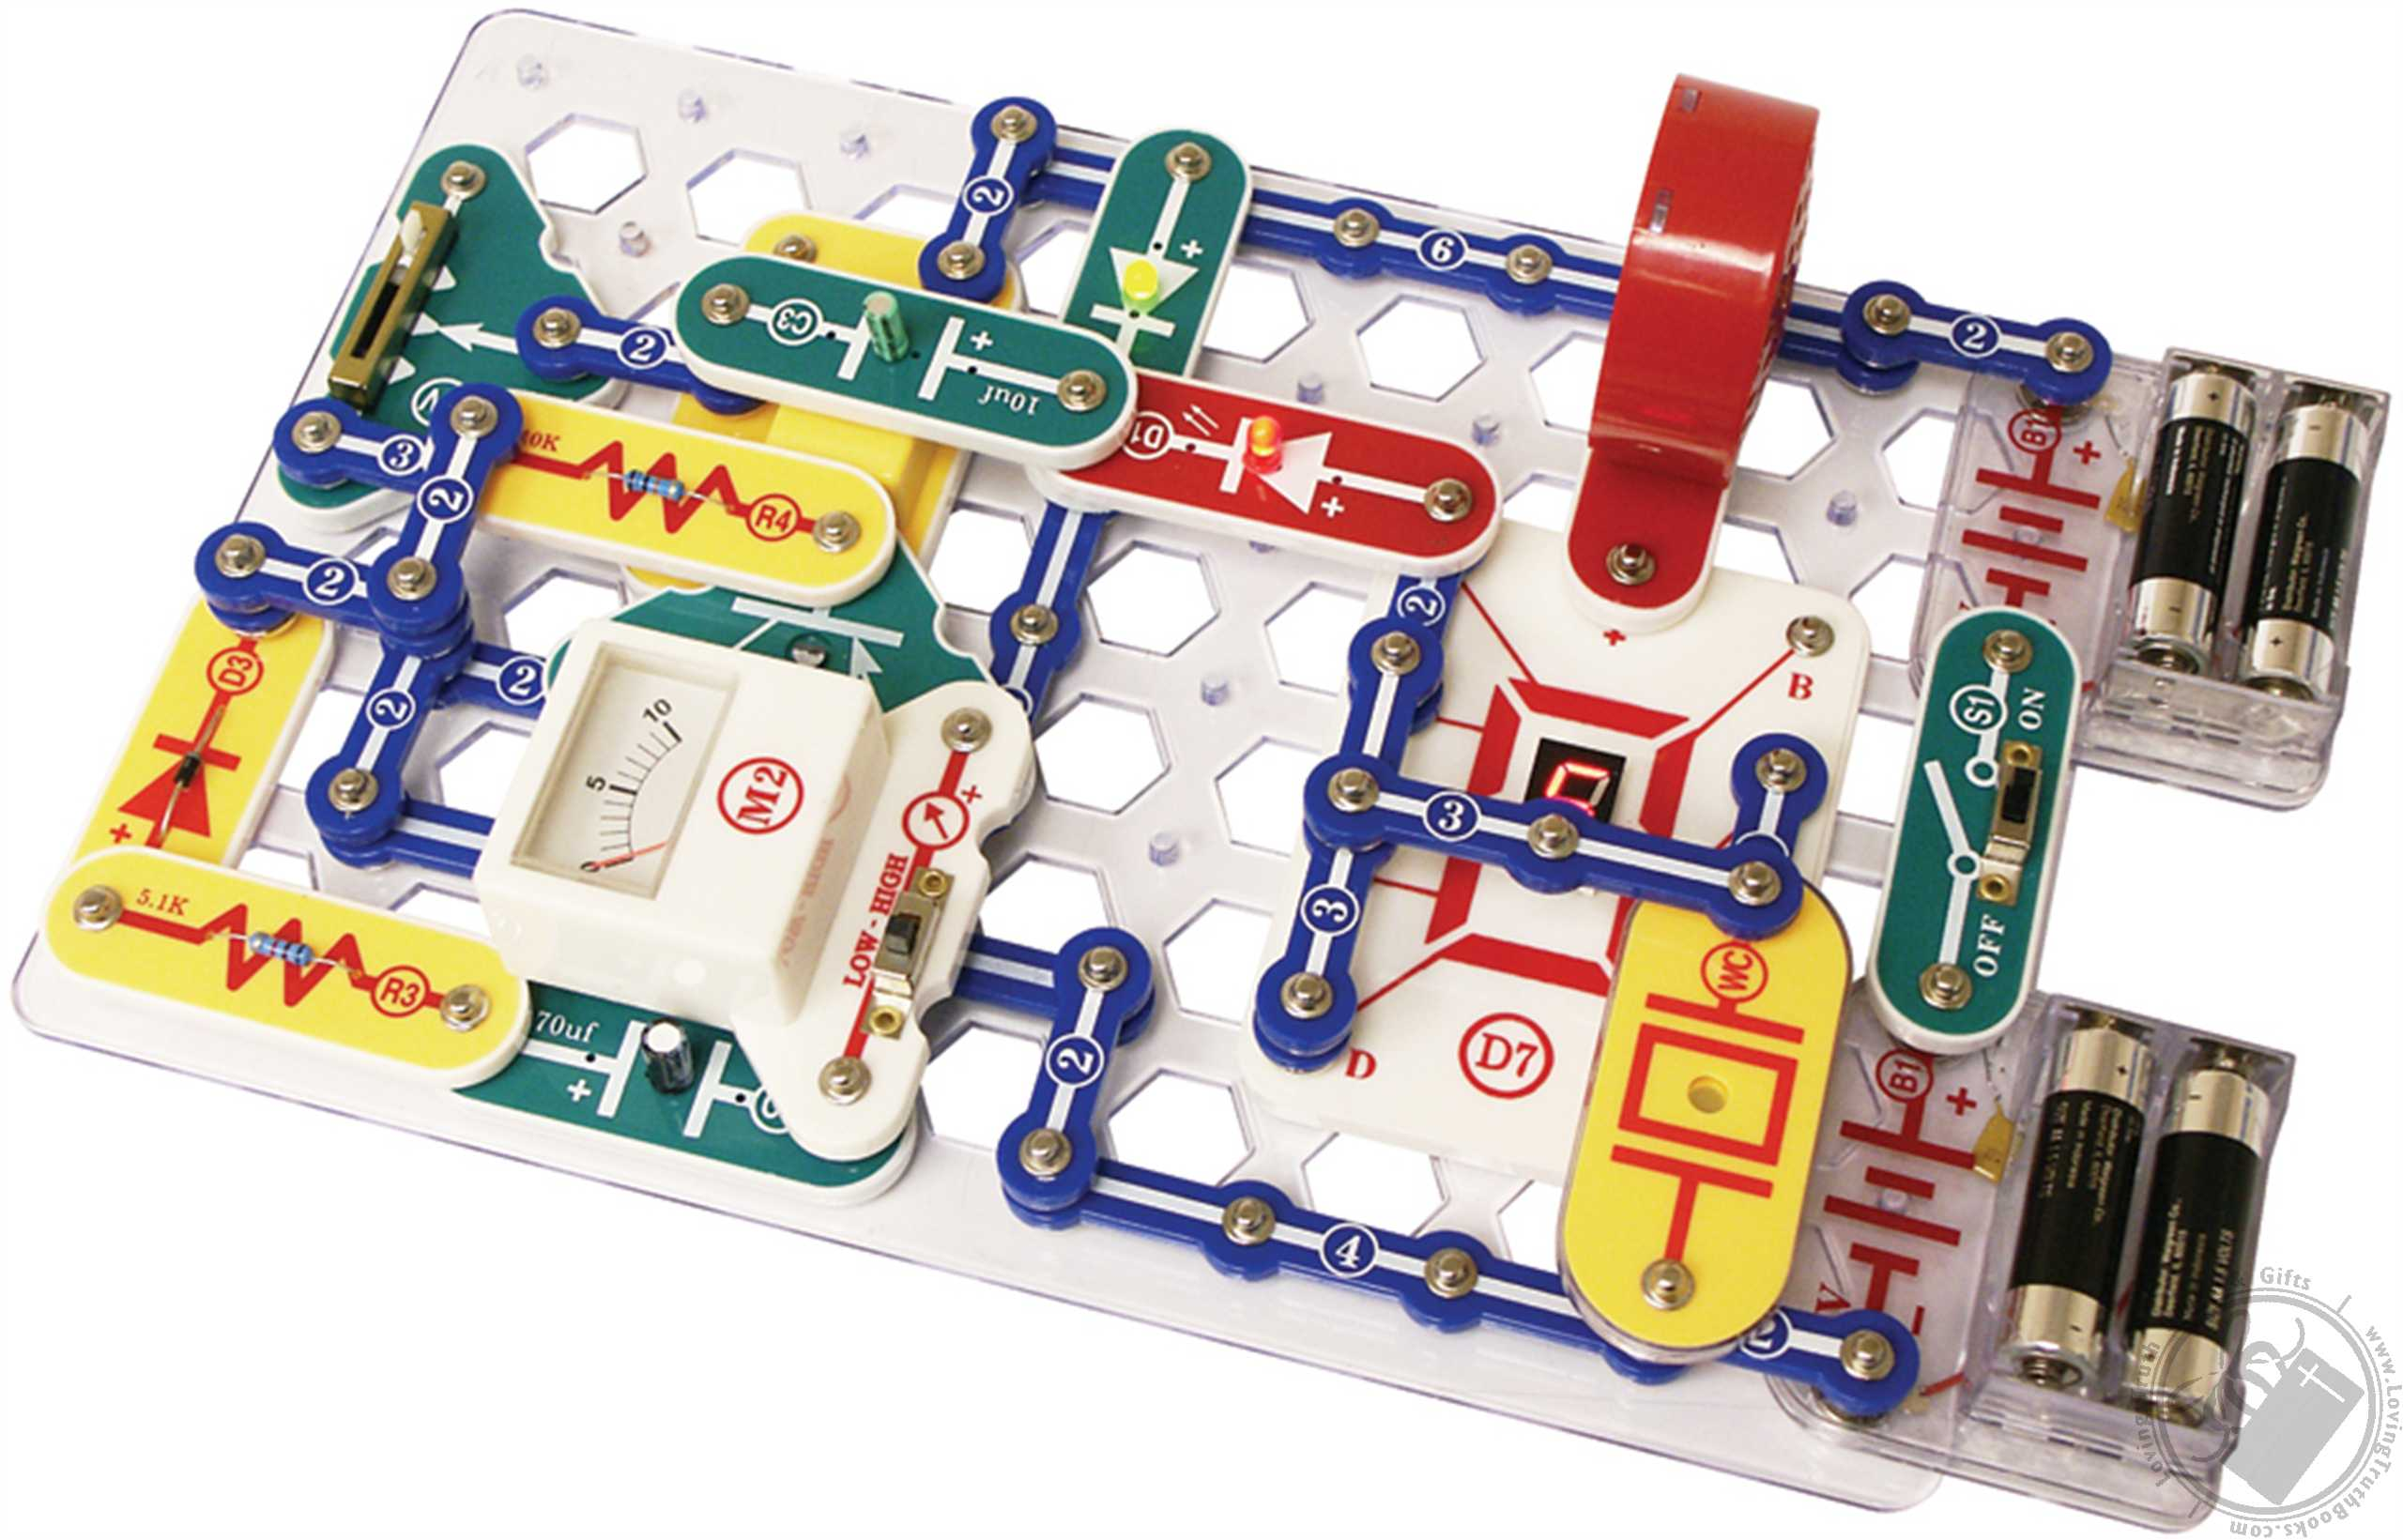 Sebok Contains The Electronic Versions Of 80 Books 6819553 Ejobnet Snap Circuits Green Energy Sc500r Pro 500in1 Sc500